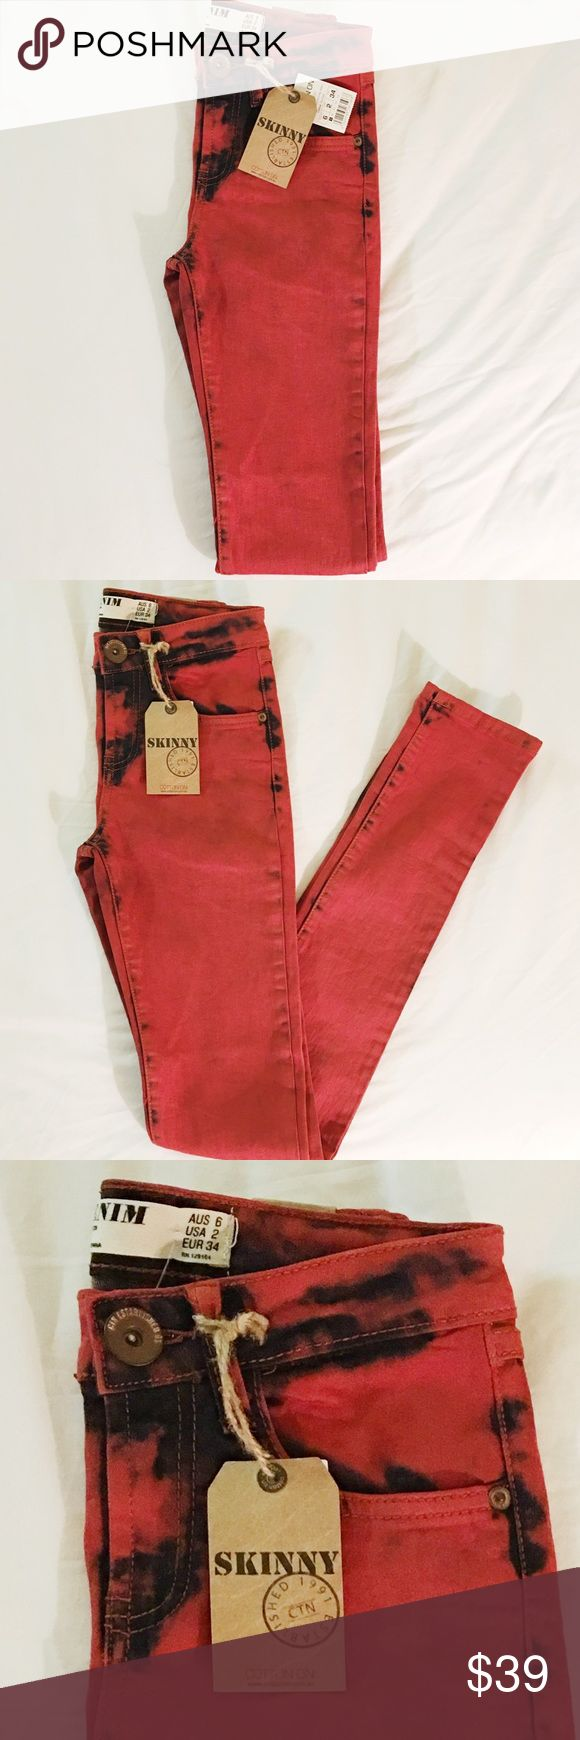 Denim Cotton On size 2 Red Skinny Jeans sz2 Cotton On DENIM Skinny Jeans size 2   These jeans look good on everyone! Quality threads   * Us 2 EUR 34 Australia 6   * Quality premium denim  * Measurements COMING SOON  * Brand New With Tags   I am 🙊 ⭐️⭐️⭐️⭐️⭐️ 5-Star rated plus Ship in 48hrs or less 📦! Cotton On Jeans Skinny